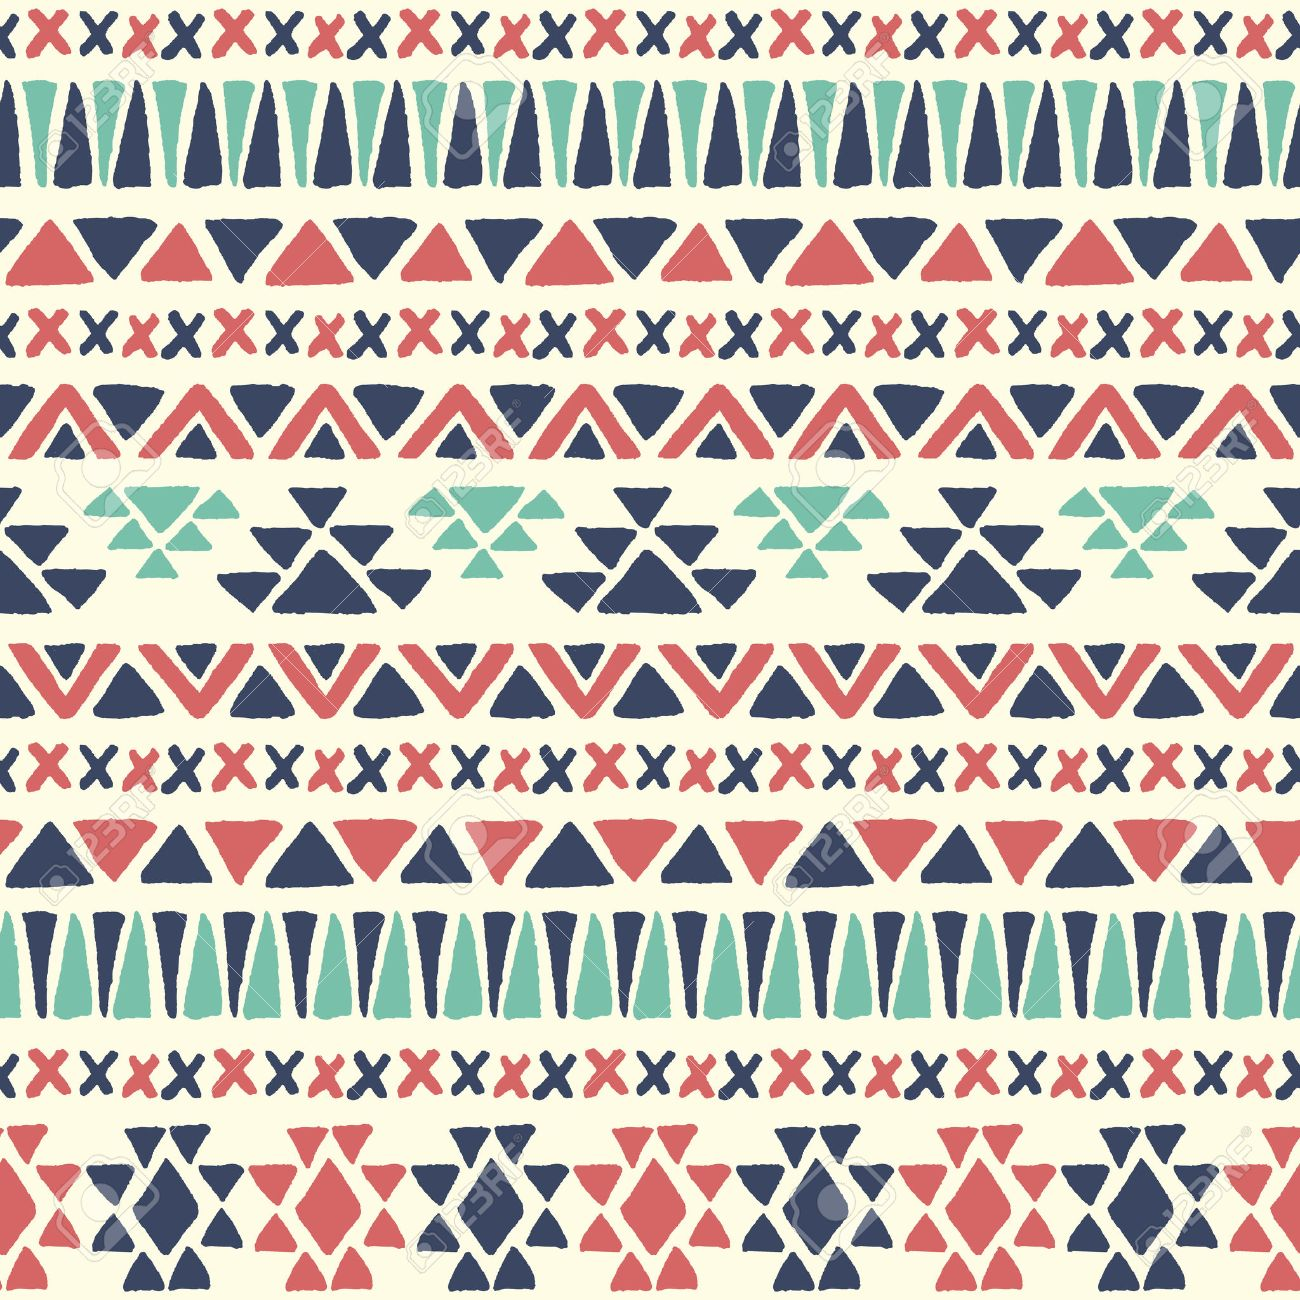 Background geometric mexican patterns seamless vector zigzag maya - Ethnic Seamless Pattern Aztec Geometric Background Hand Drawn Navajo Fabric Modern Abstract Wallpaper